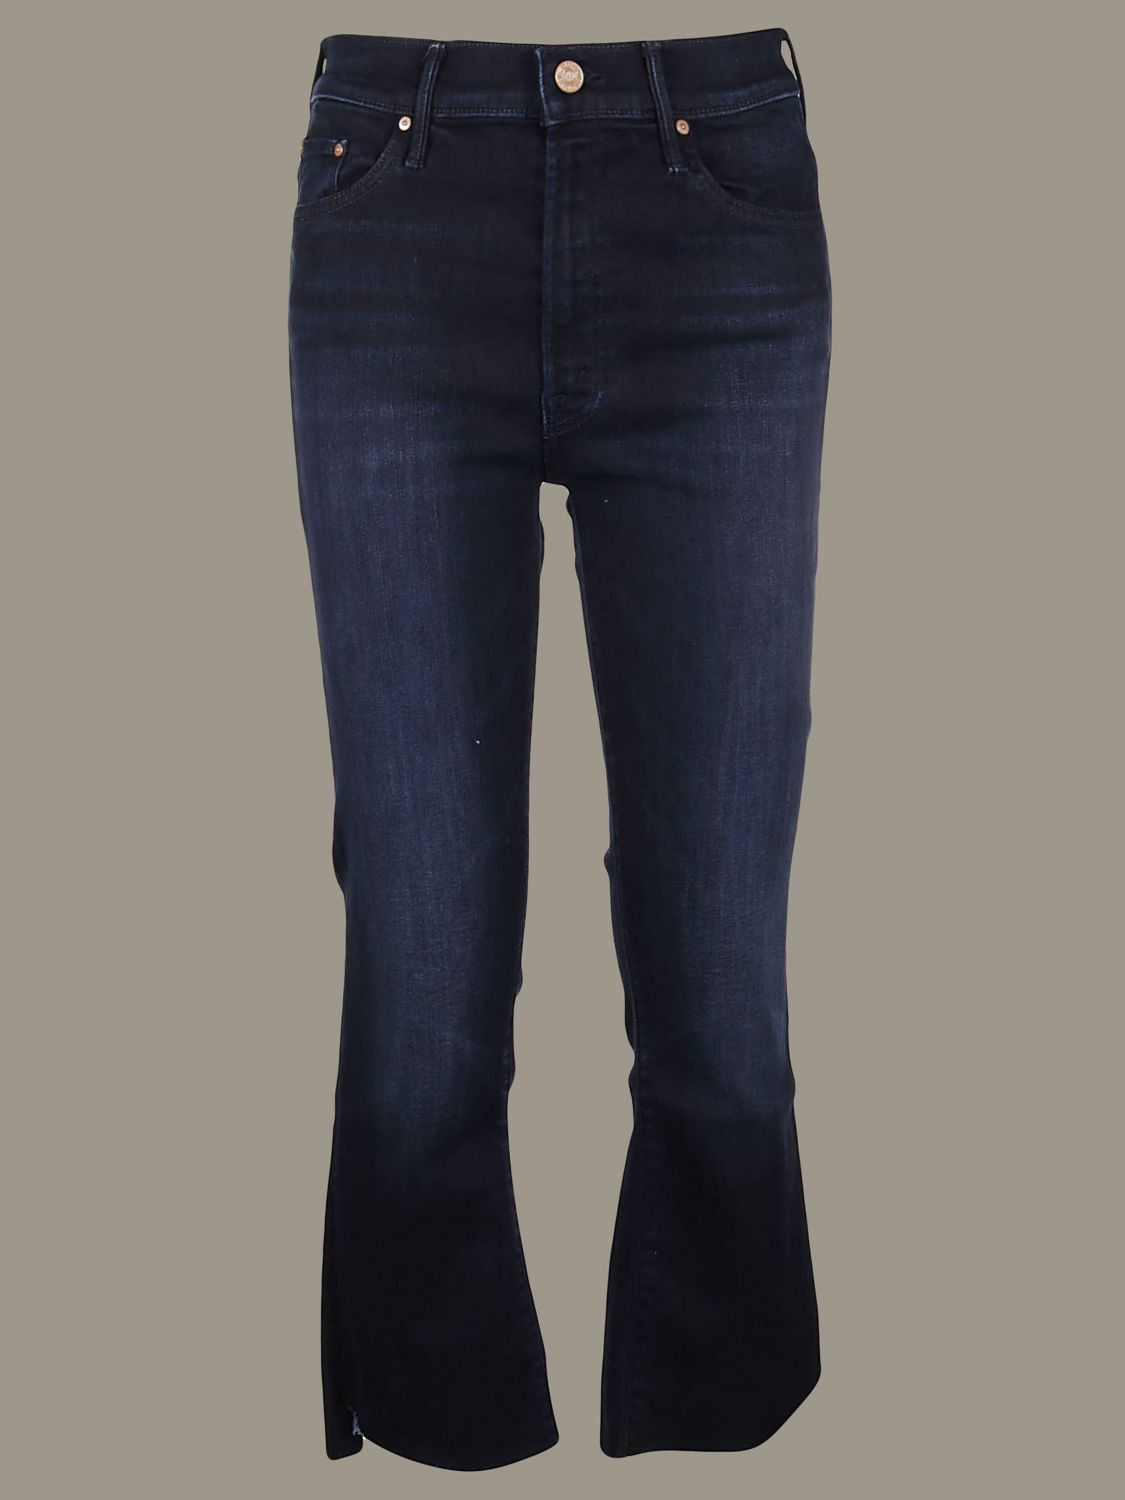 Jeans mujer Mother denim 1